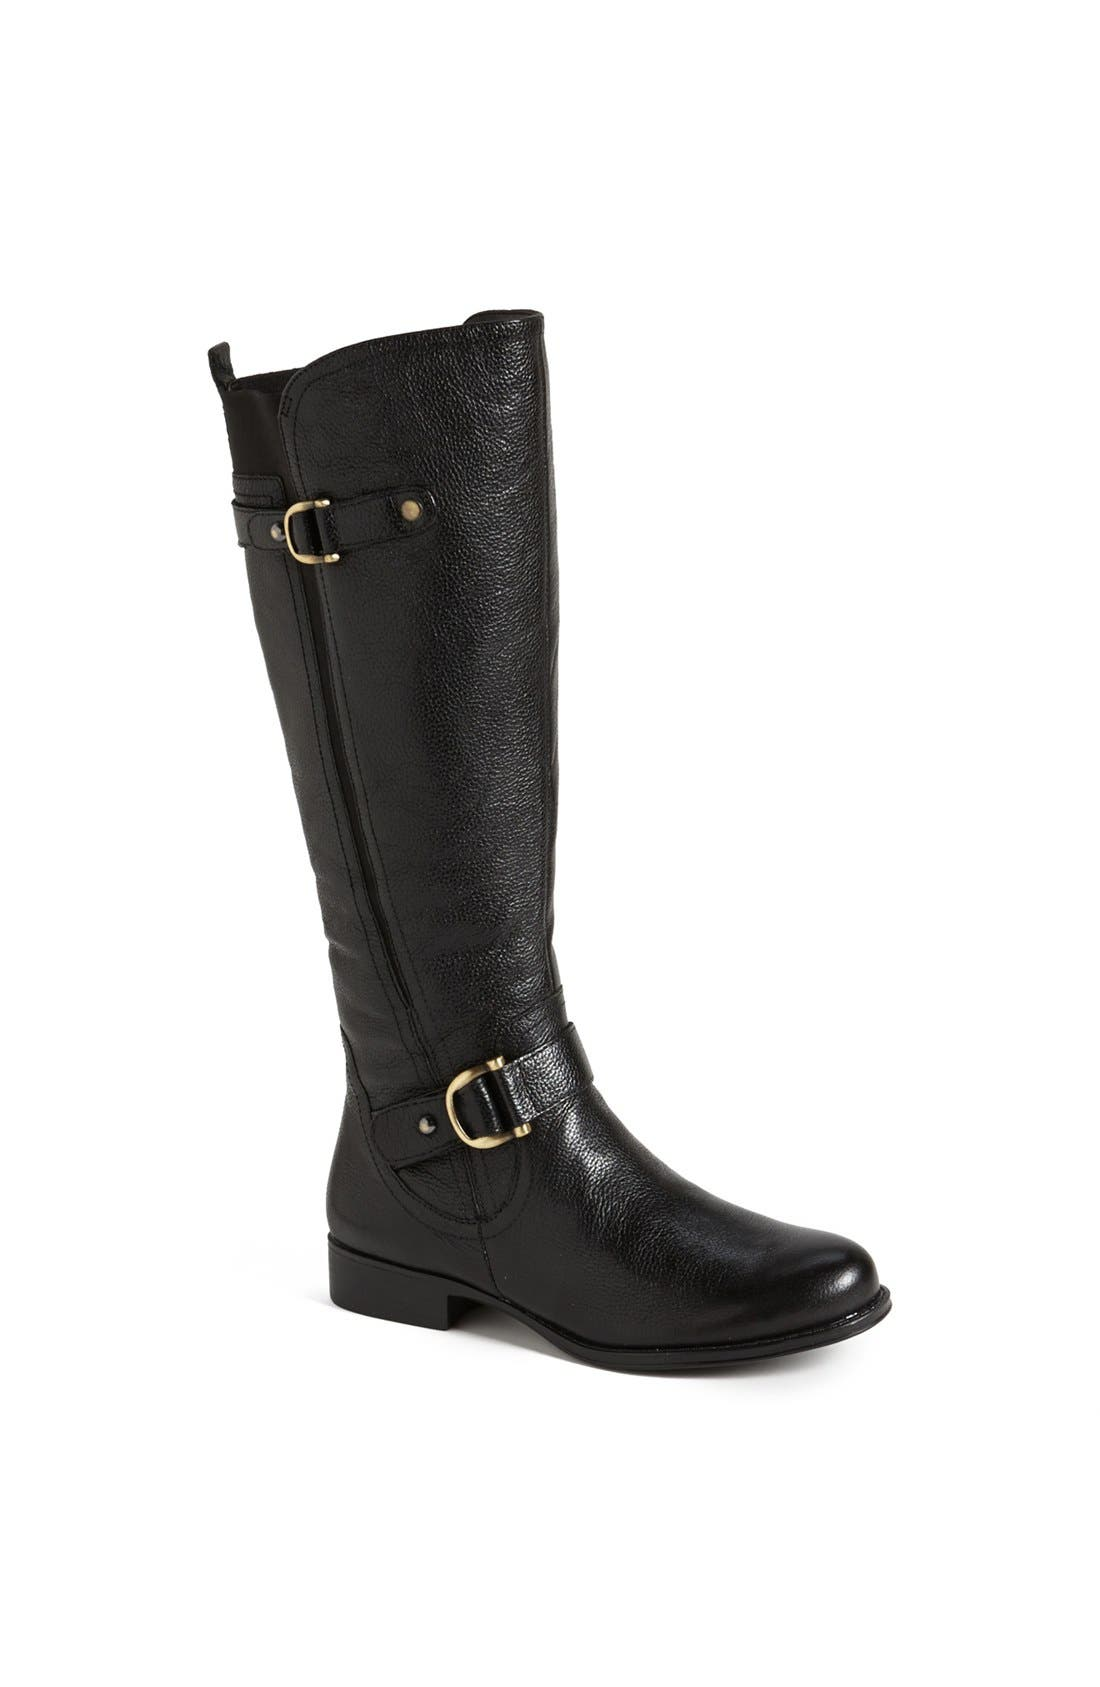 Main Image - Naturalizer 'Jersey' Leather Riding Boot